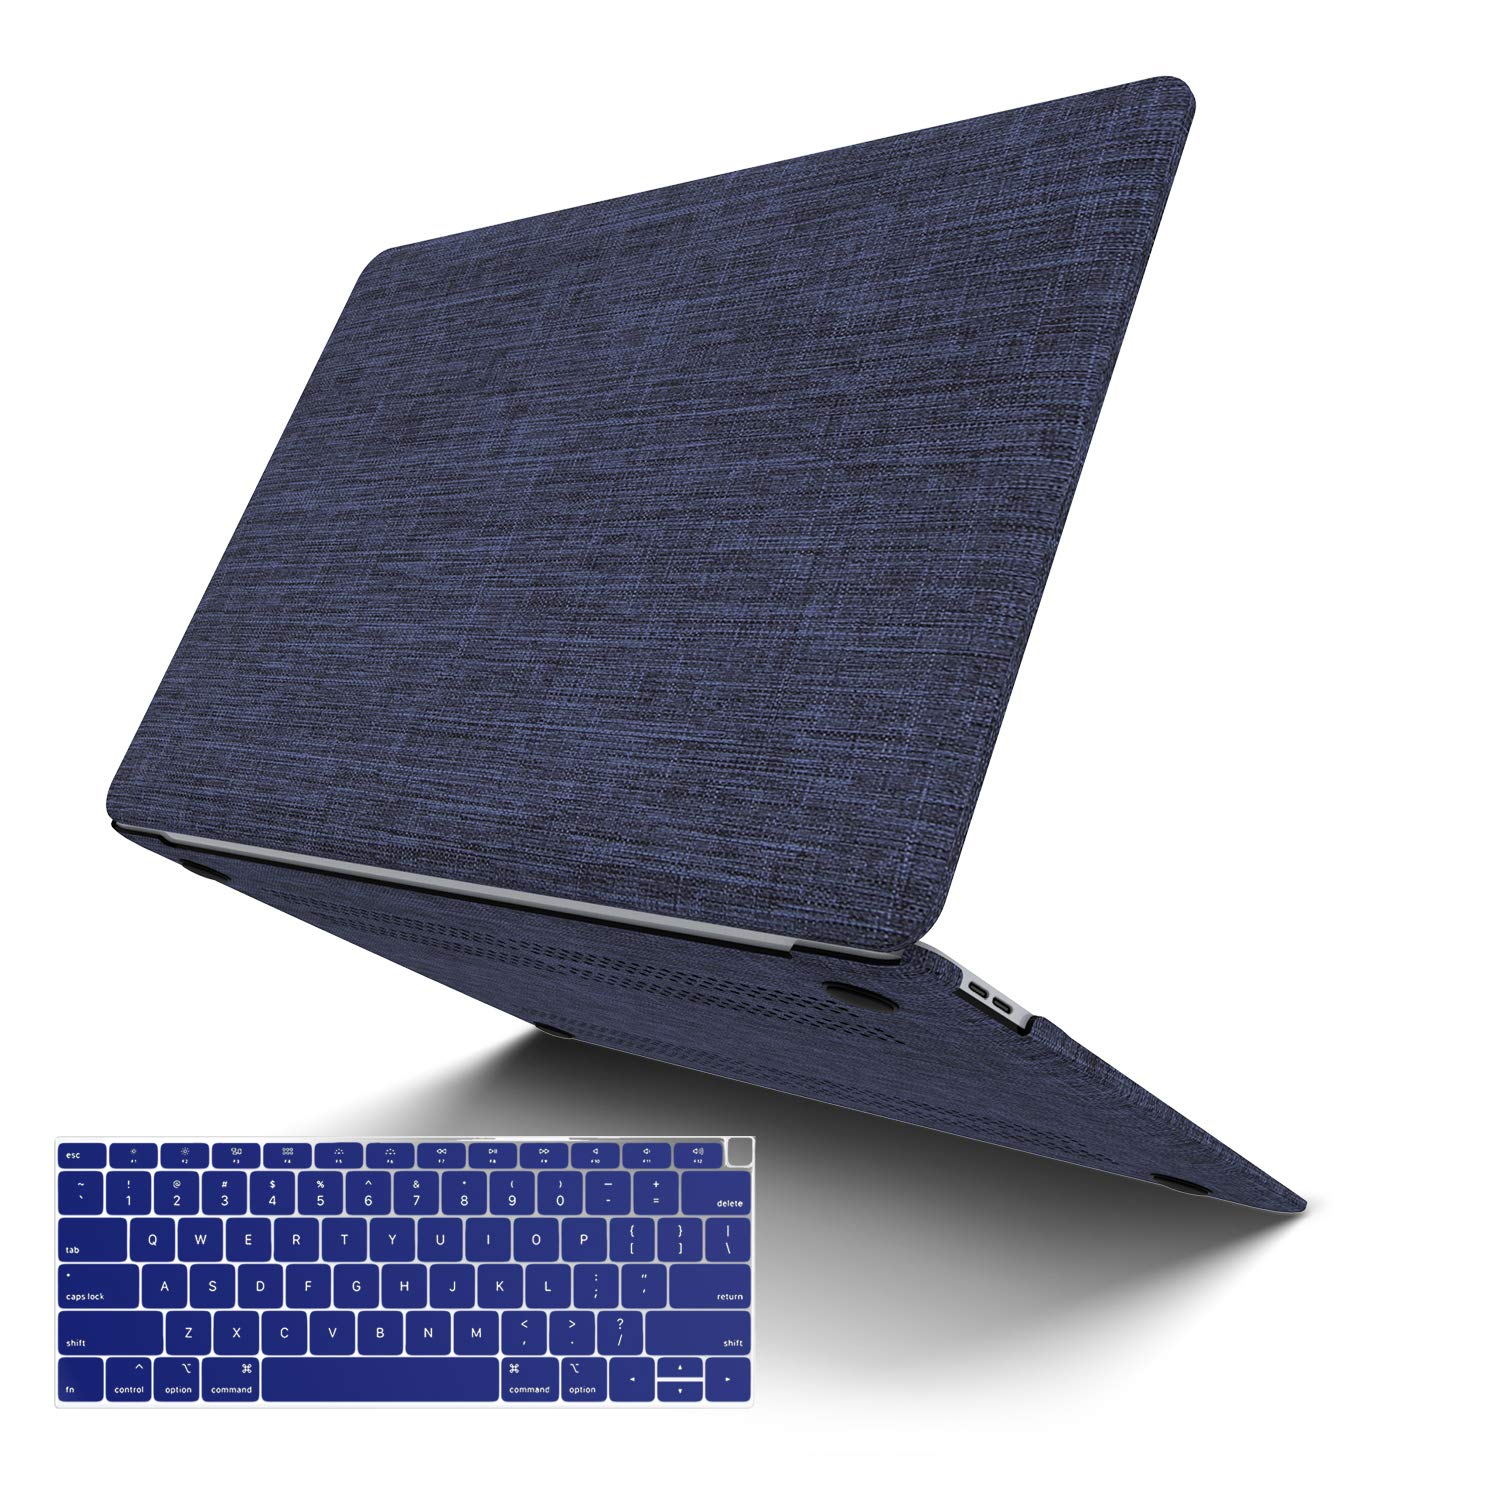 MacBook Air 13 Inch Case 2020 2019 2018 Release A2179 A1932, JGOO Soft Touch Shell Cover(Fabric), Hard Shell Case Compatible MacBook Air 13 Inch & Retina Display Fits Touch ID, Blue